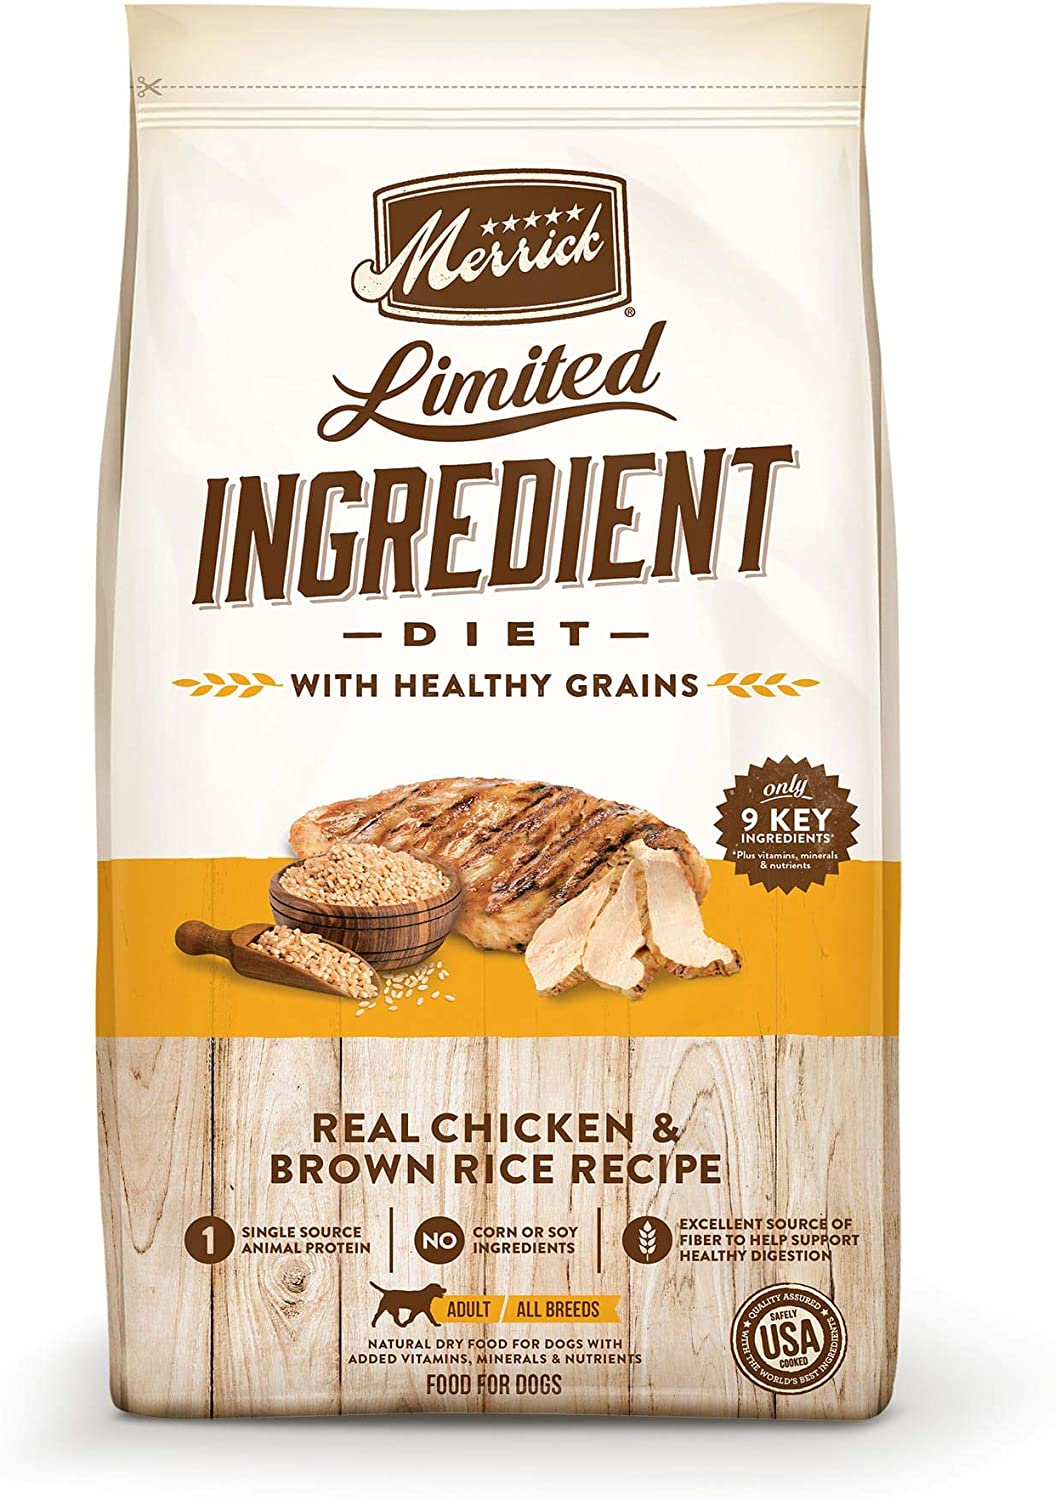 Merrick Limited Ingredient Diet Chicken & Brown Rice Recipe Dry Dog Food, 4 lbs.